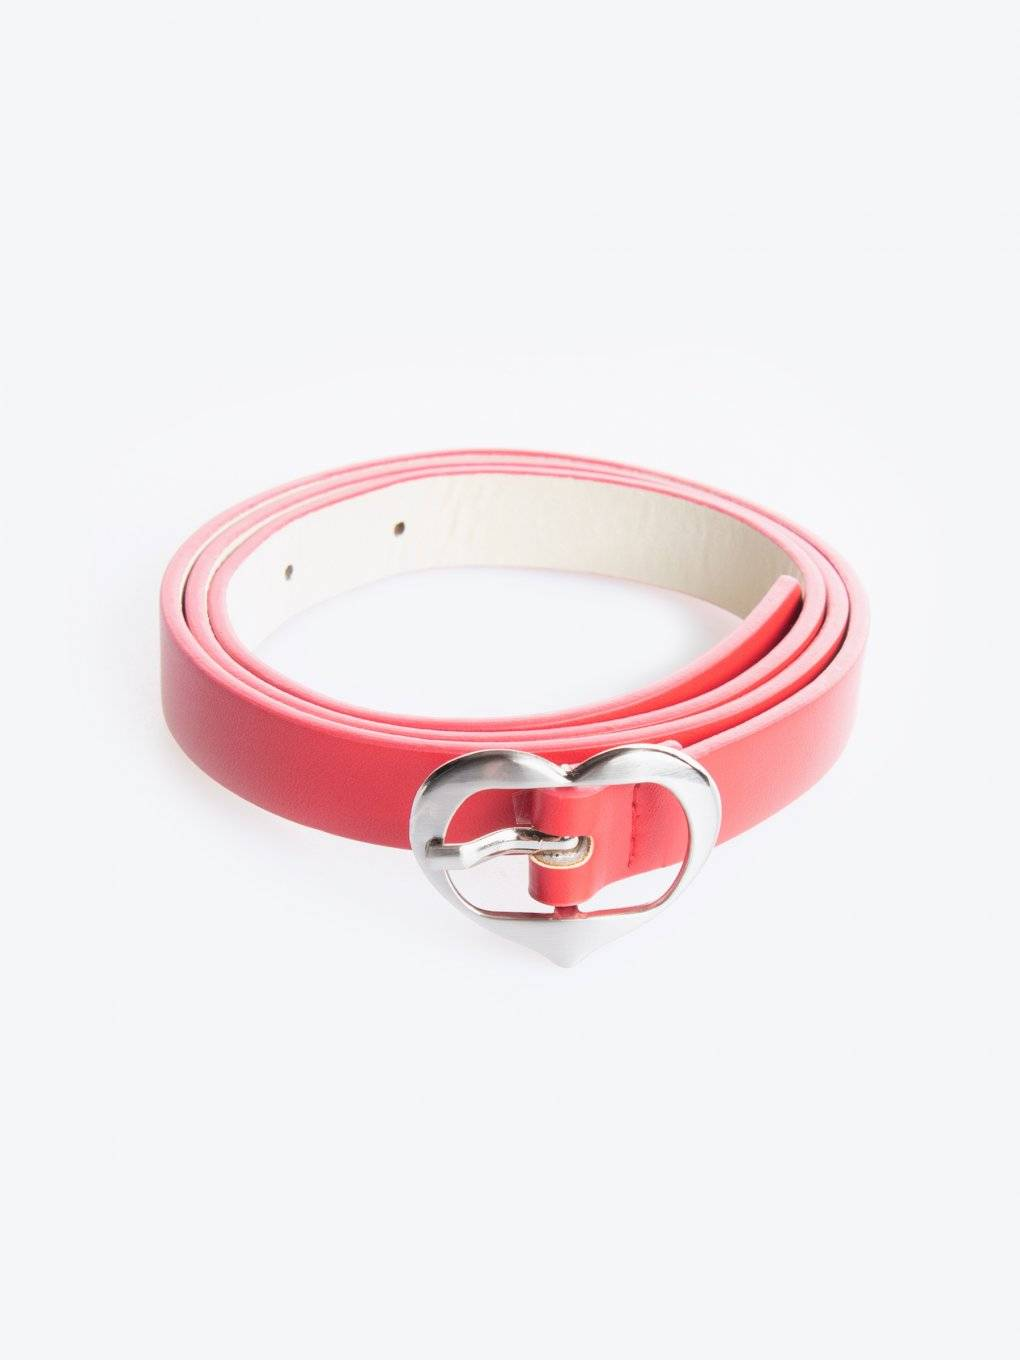 Faux leather belt with heart buckle